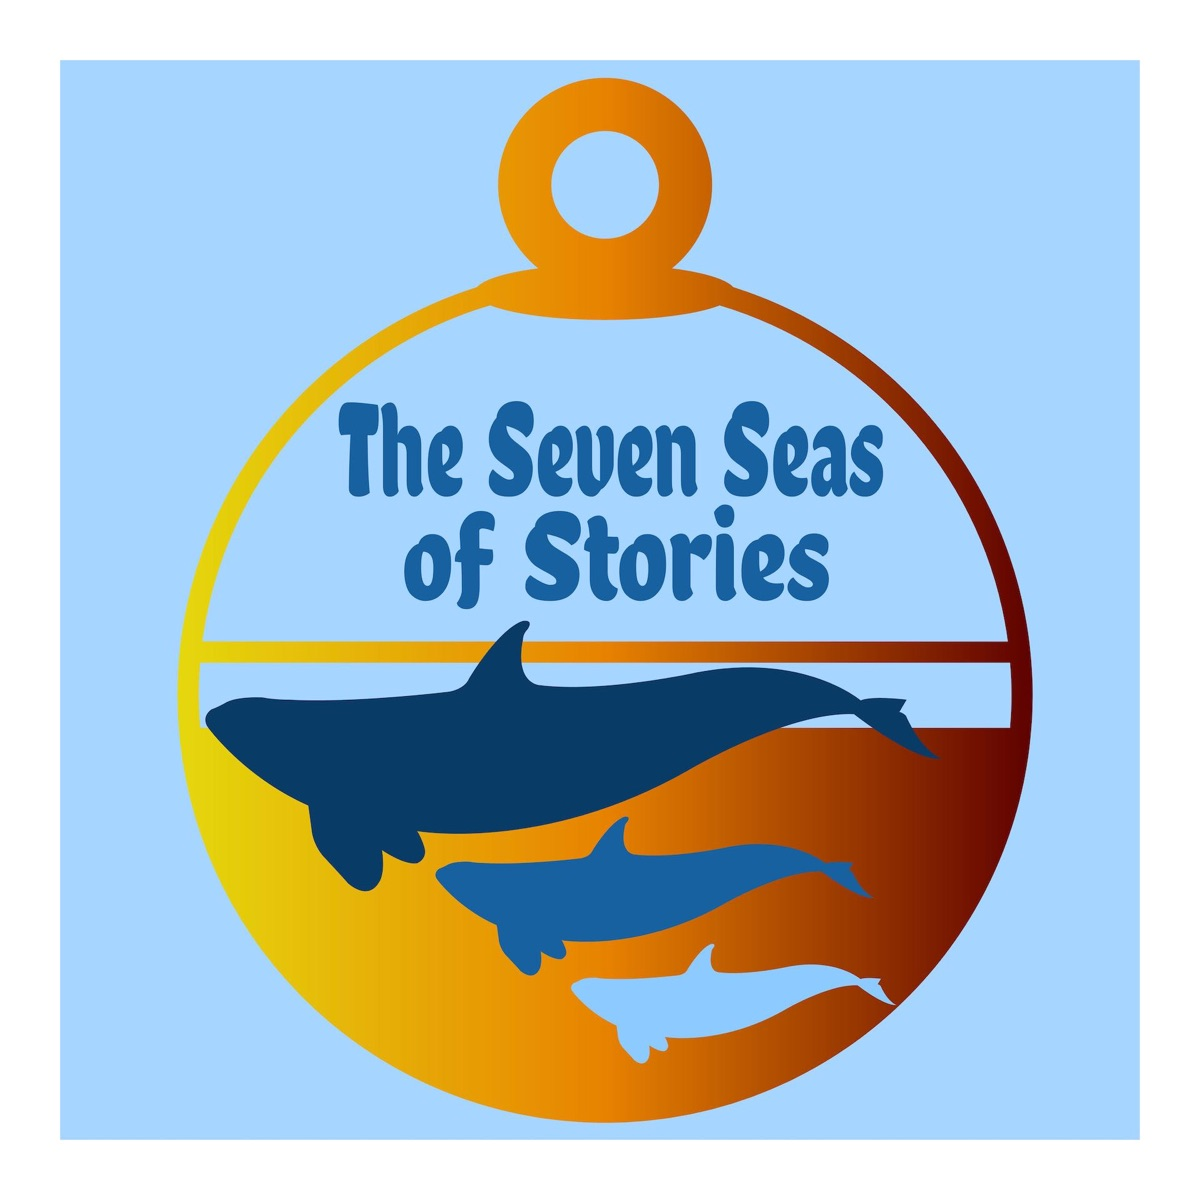 The Seven Seas of Stories